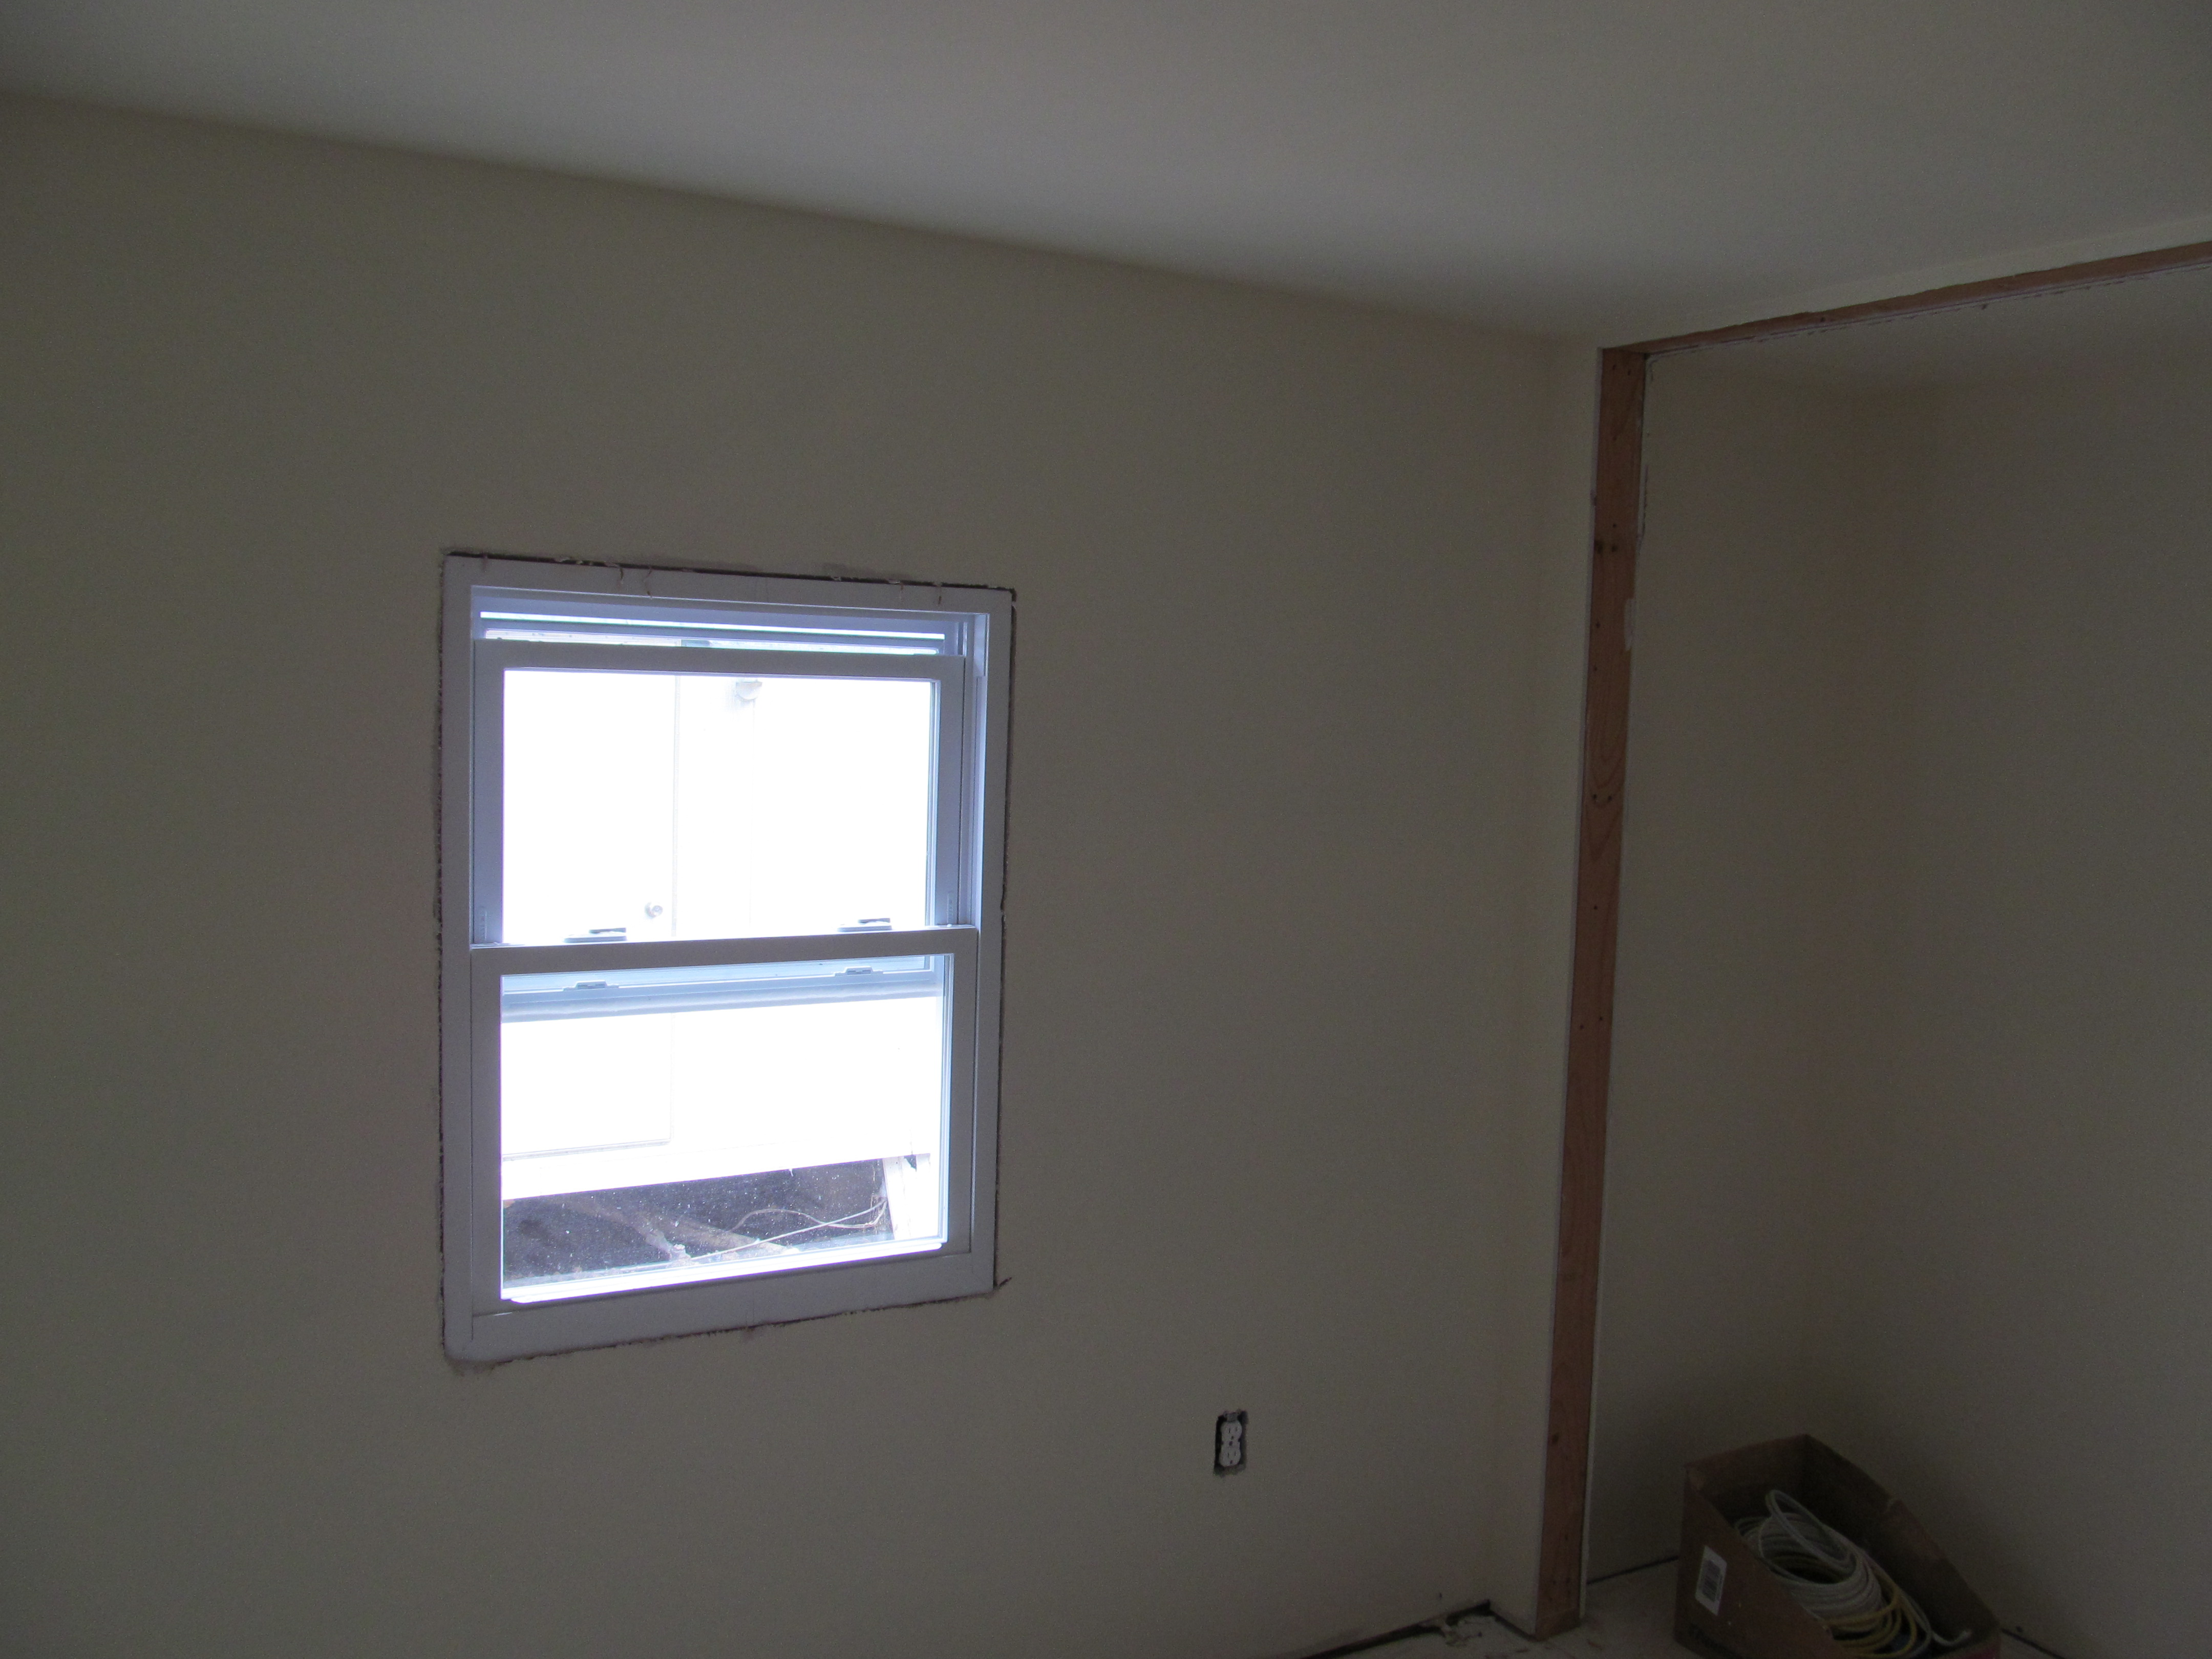 mobile home improvement interior room with window and closet